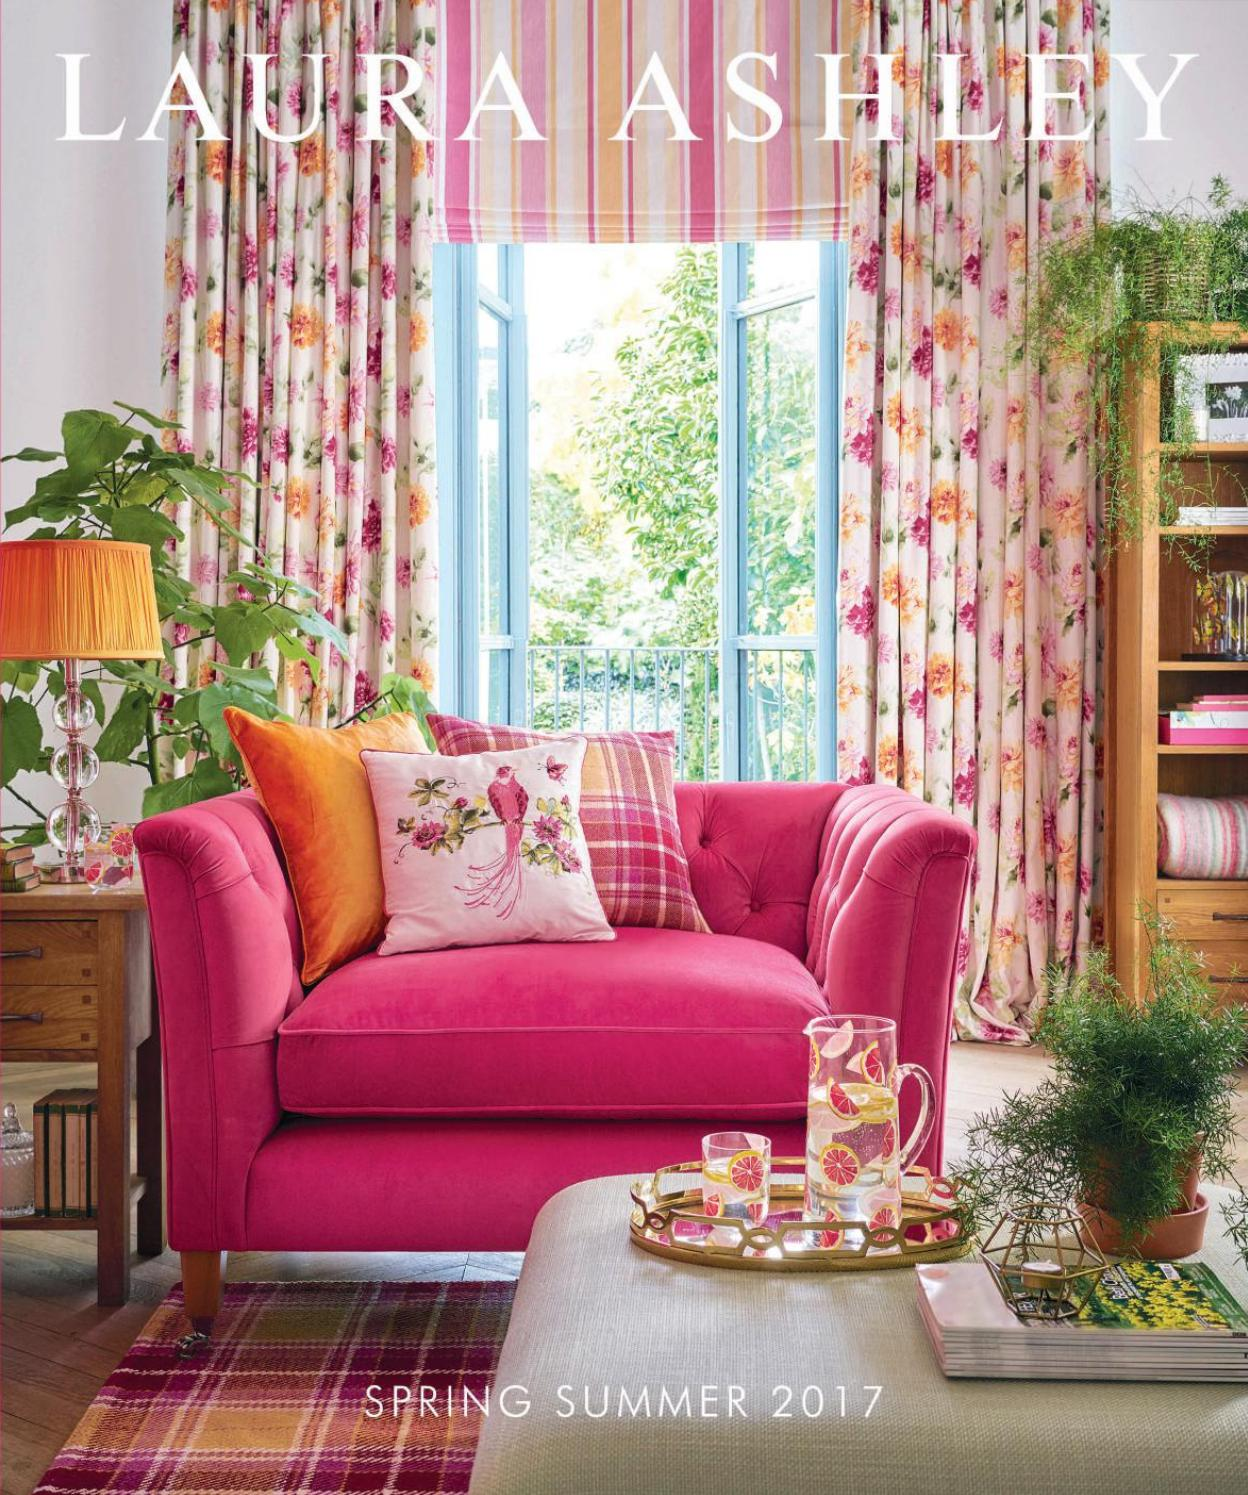 Laura Ashley Sweden Issuu - Laura ashley living room purple